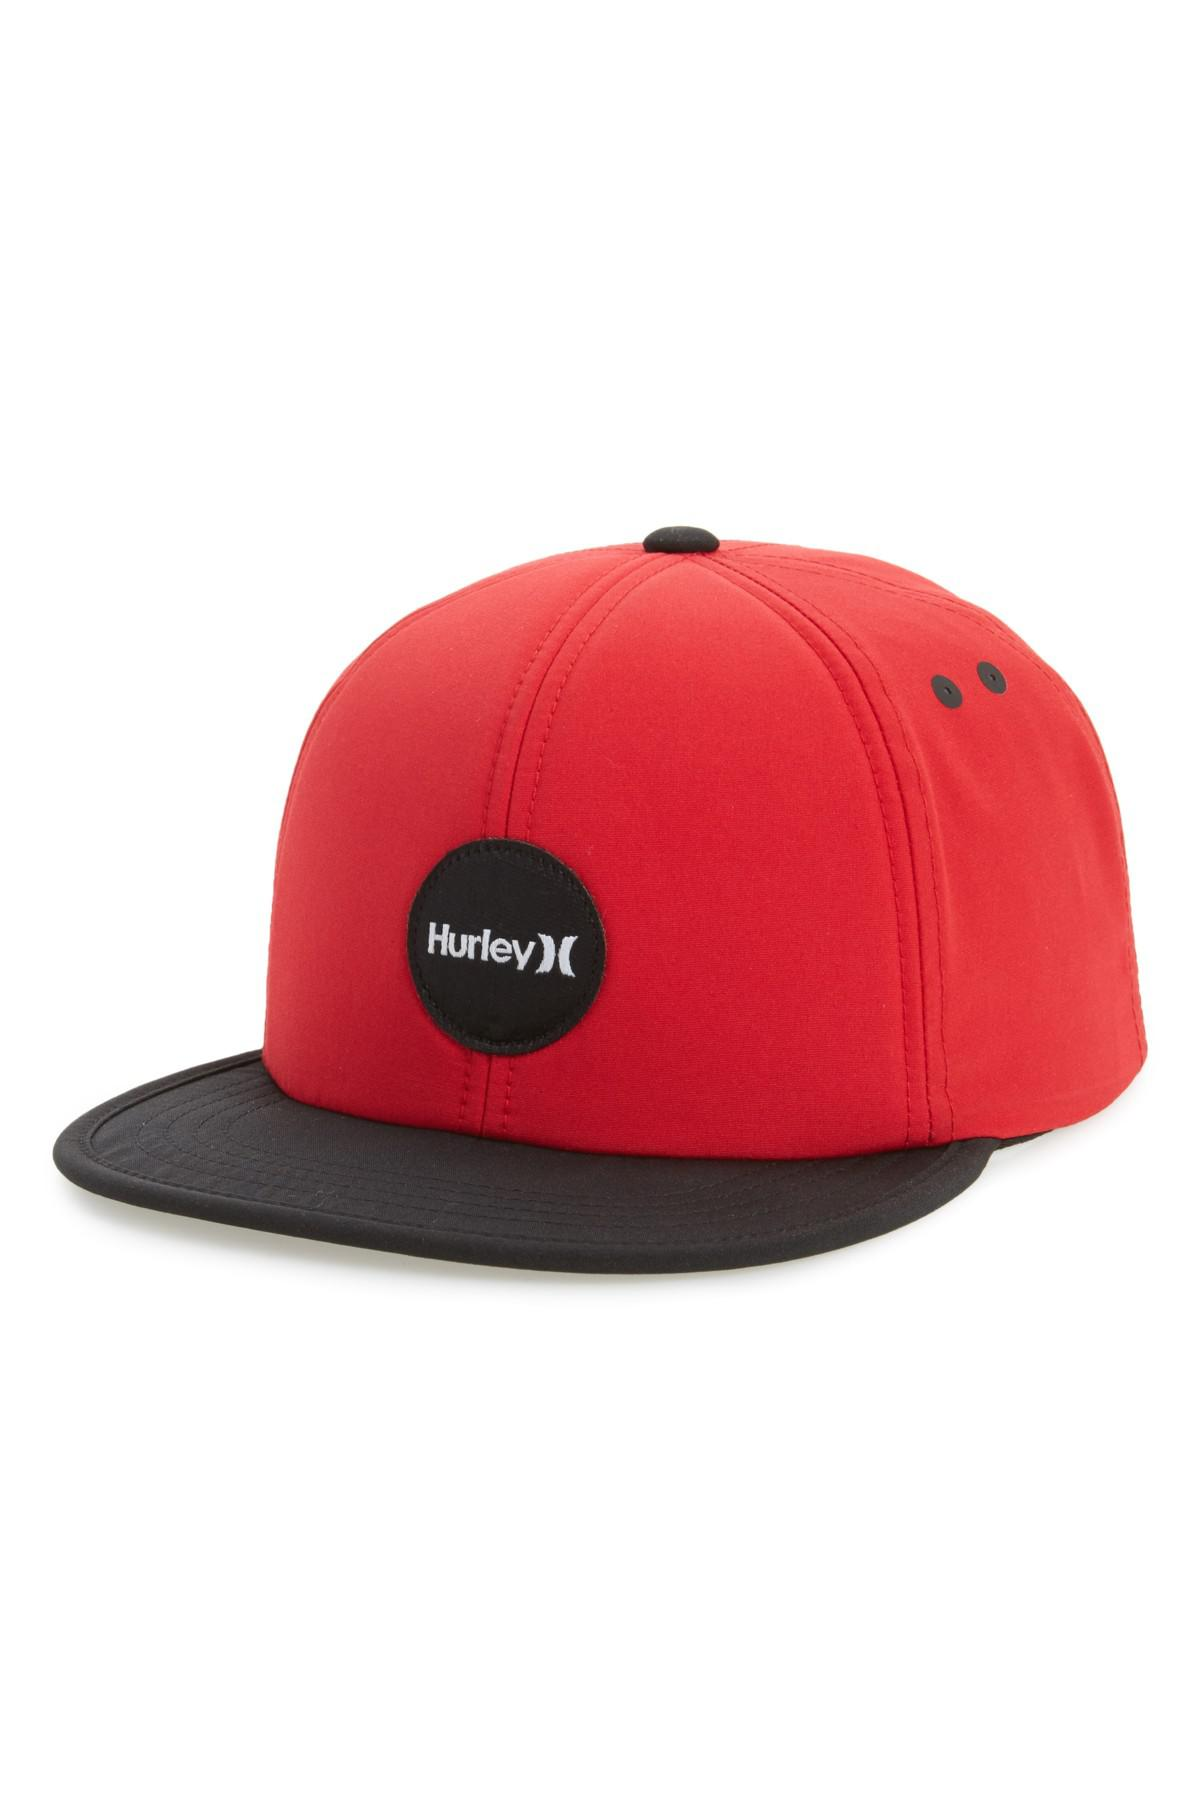 61f55ccc where to buy lyst hurley pacific hats snapback baseball cap in red for men  3a84c b44f5